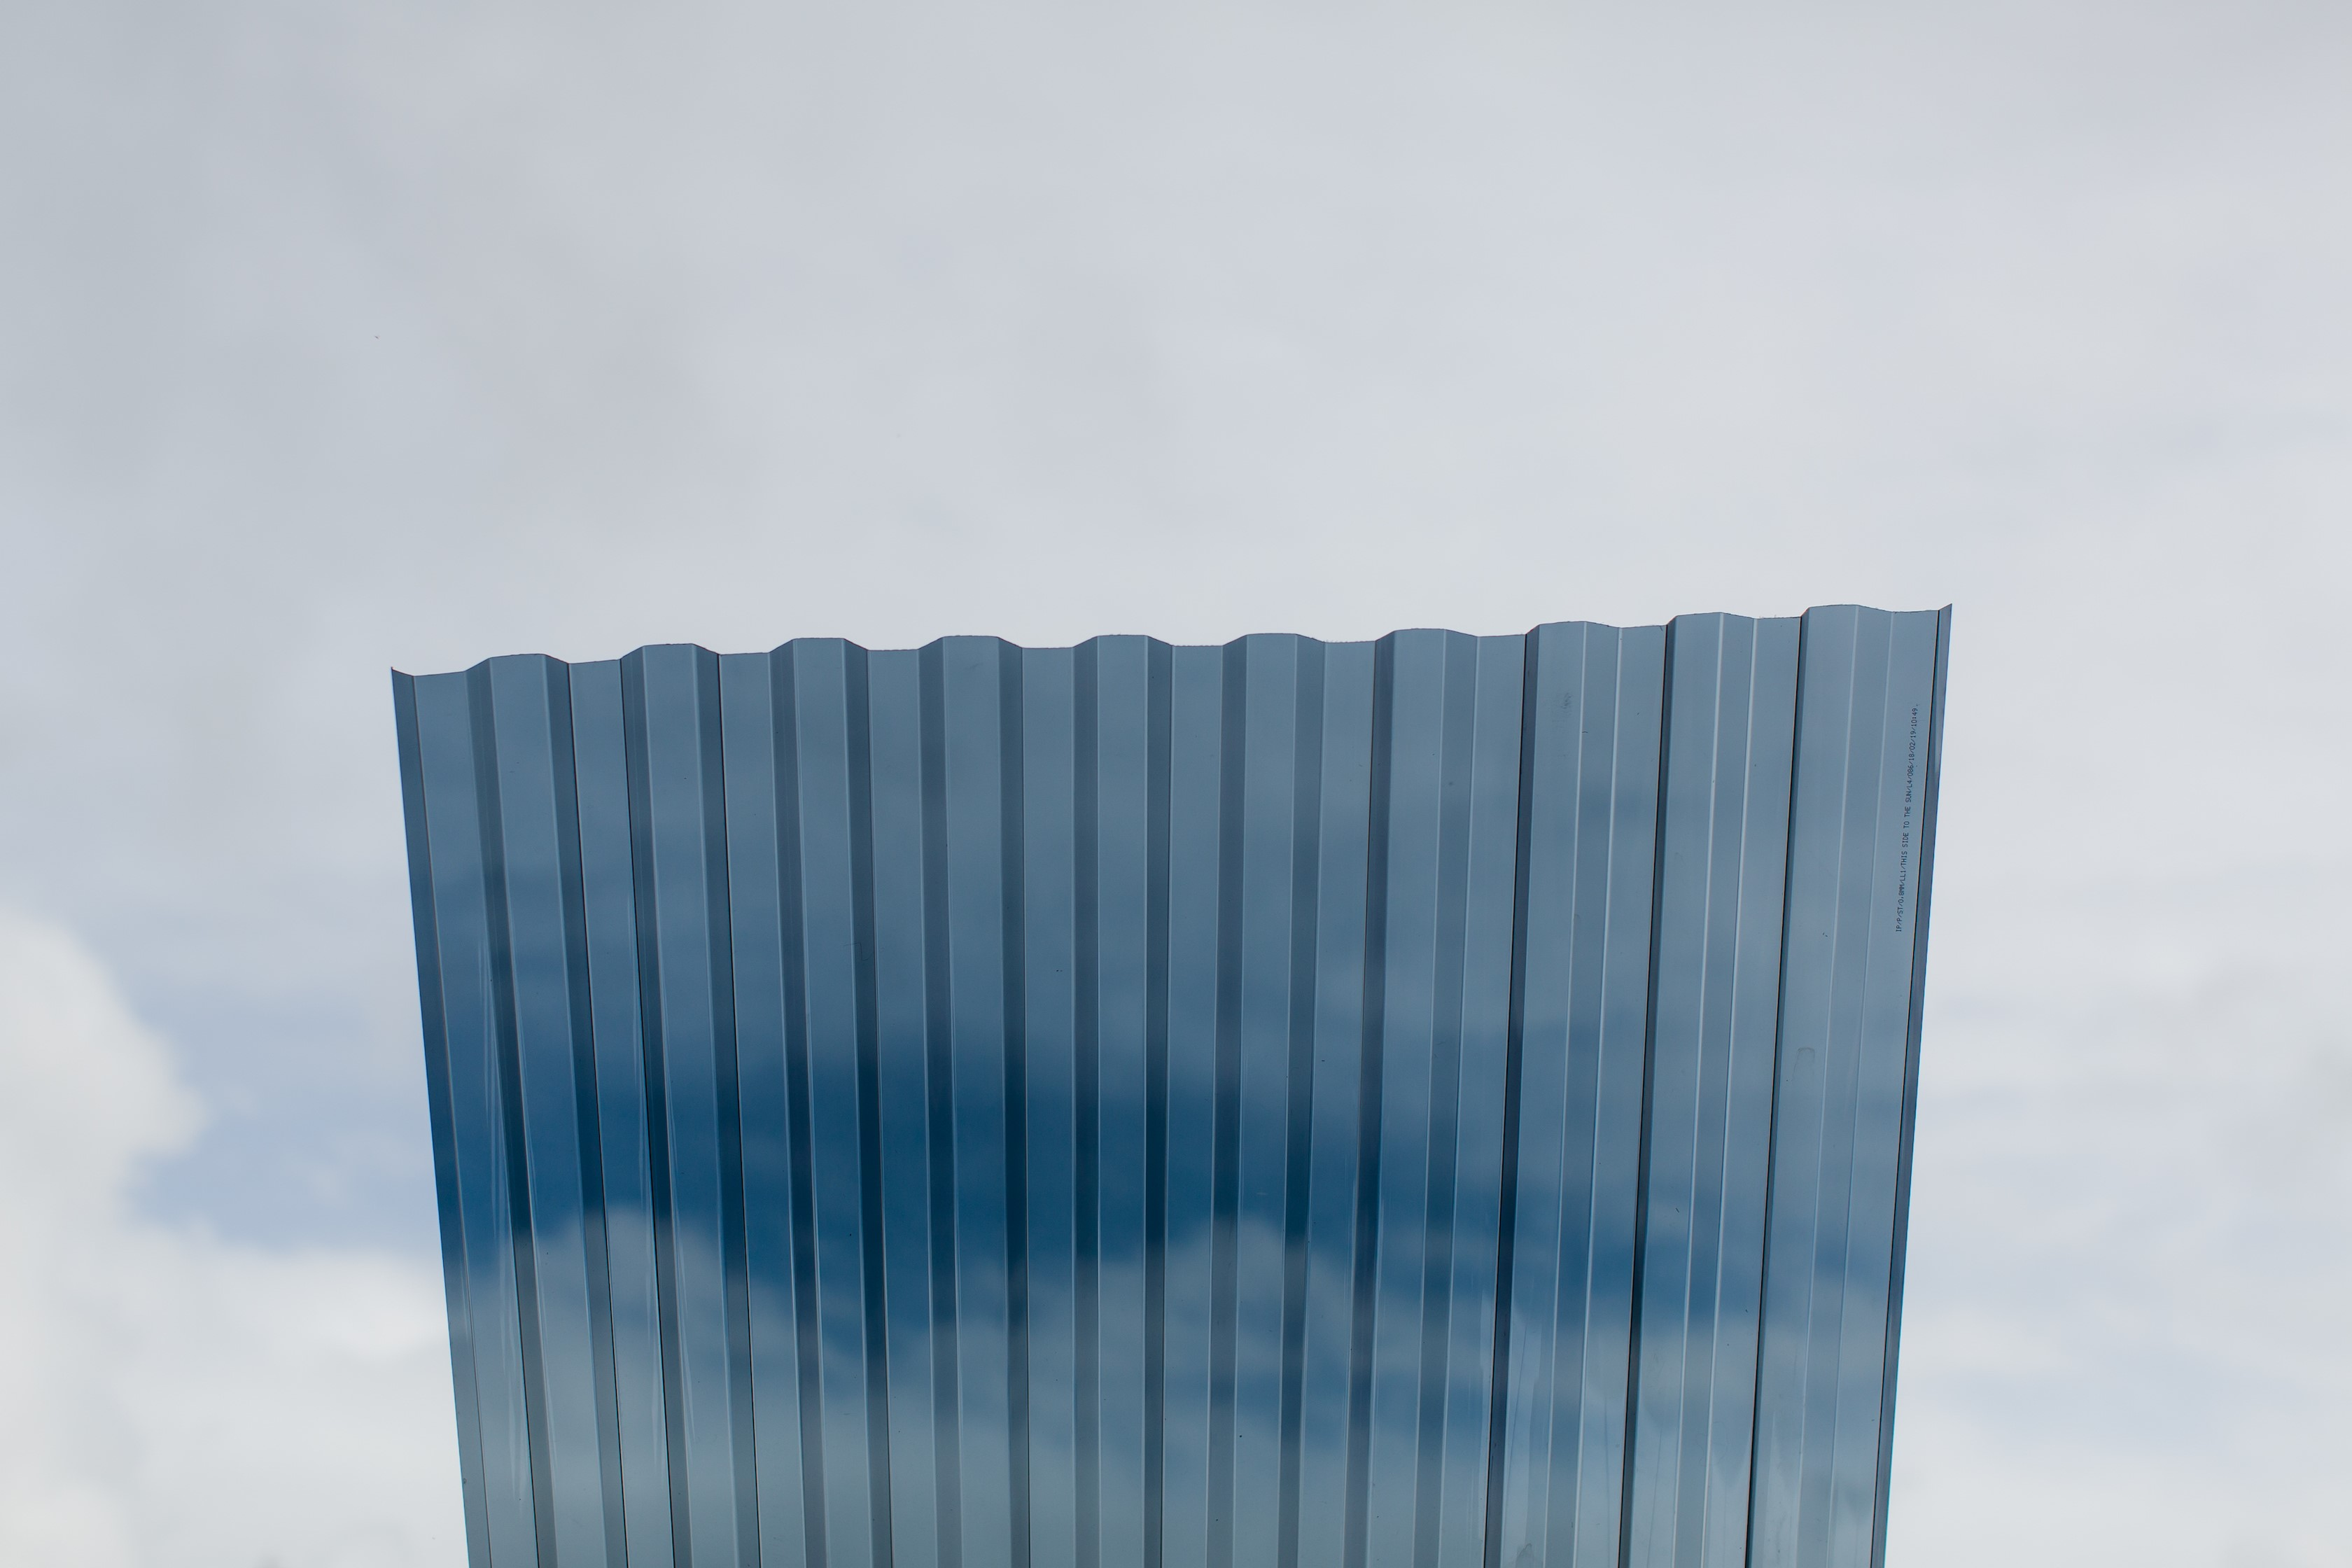 Corrugated Plastic Roofing NZ, Clearlite Roofing Auckland ...